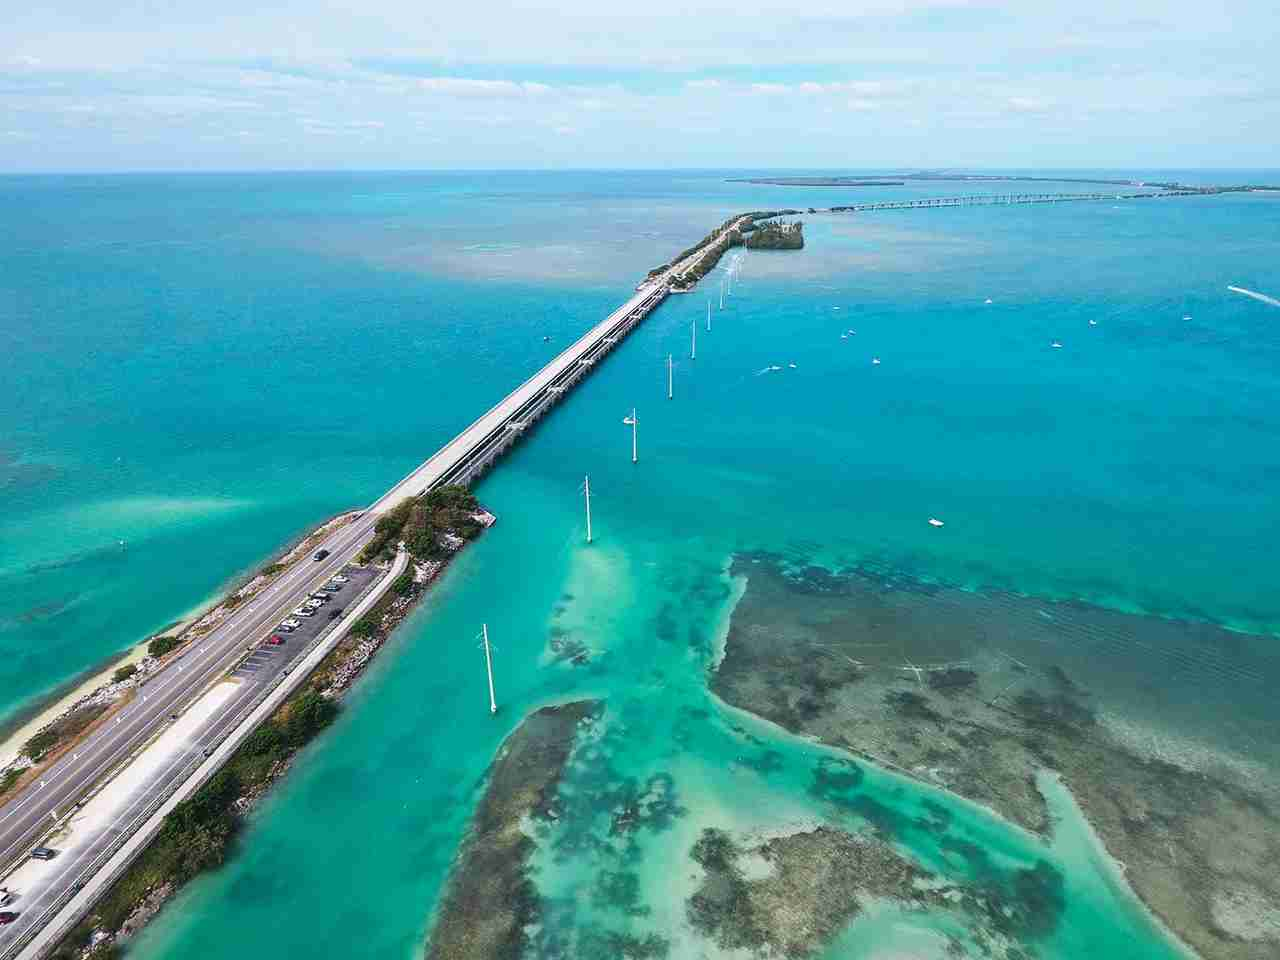 Aerial image of the Overseas Highway Florida Keys. (Photo by felixmizioznikov / Getty Images)